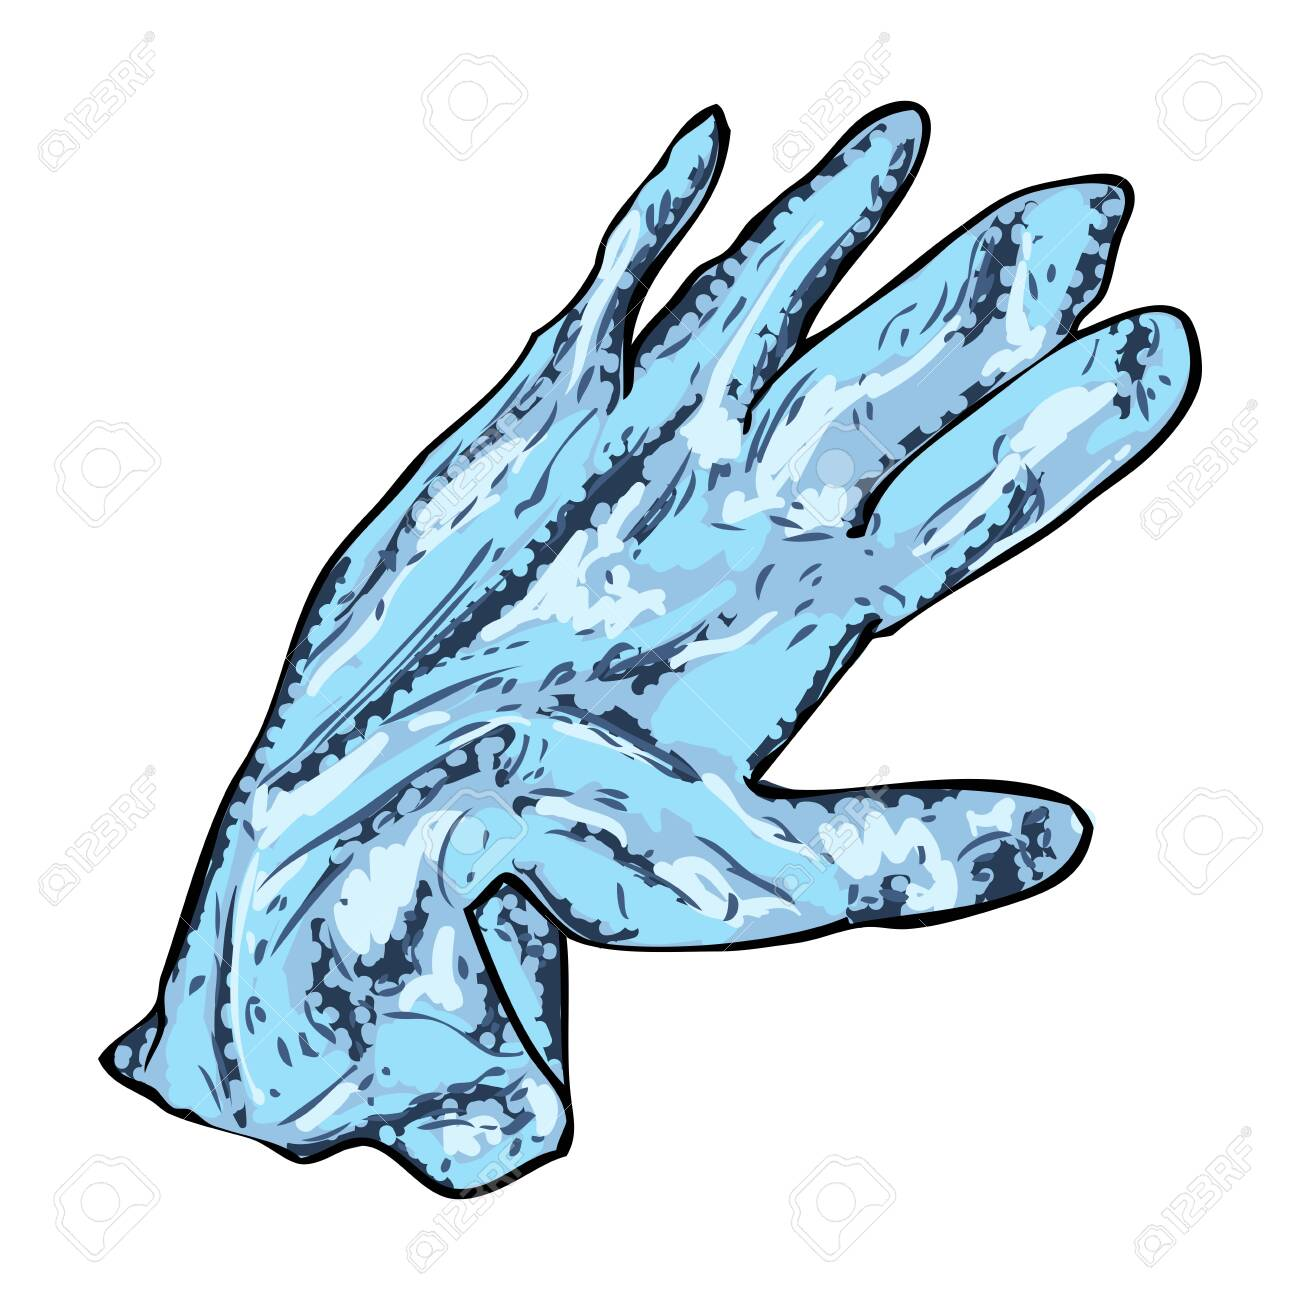 Not proper and wrong disposal of used medical gloves. Littering of hazardous contaminated bio waste disposal on the ground. Coronavirus COVID-19 prevention advice drawing. - 146028167